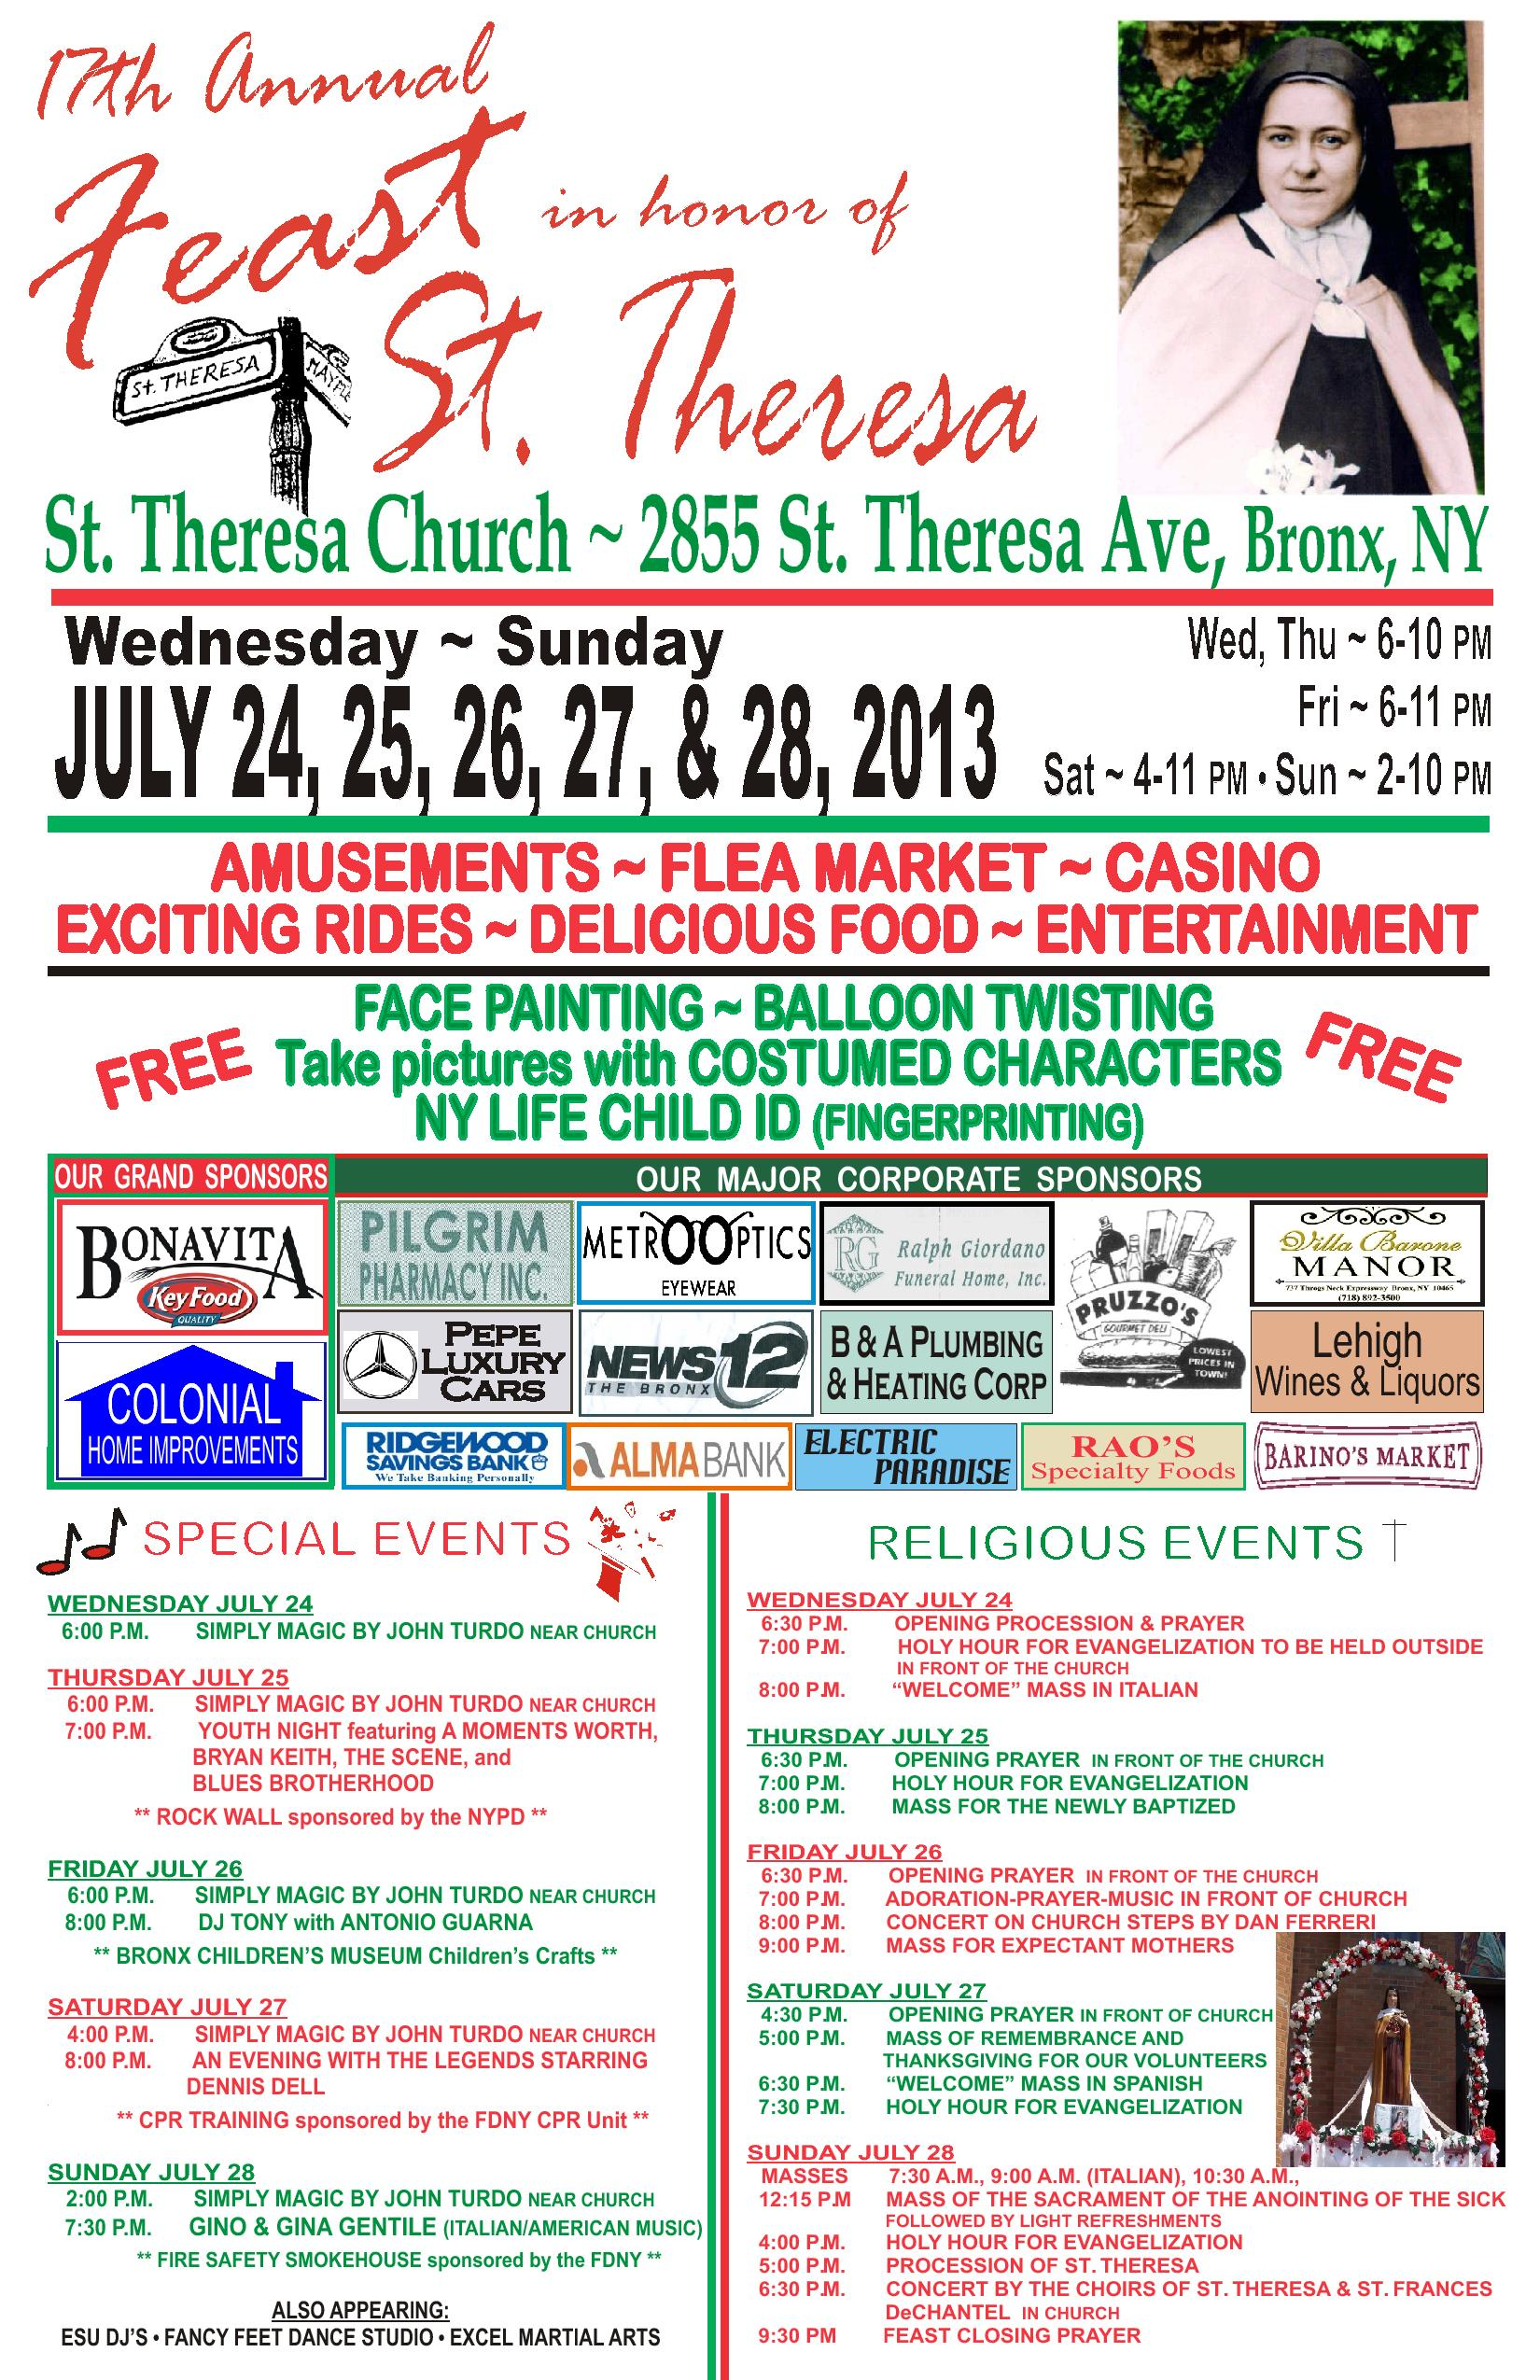 17 Annual St. Theresa Feast